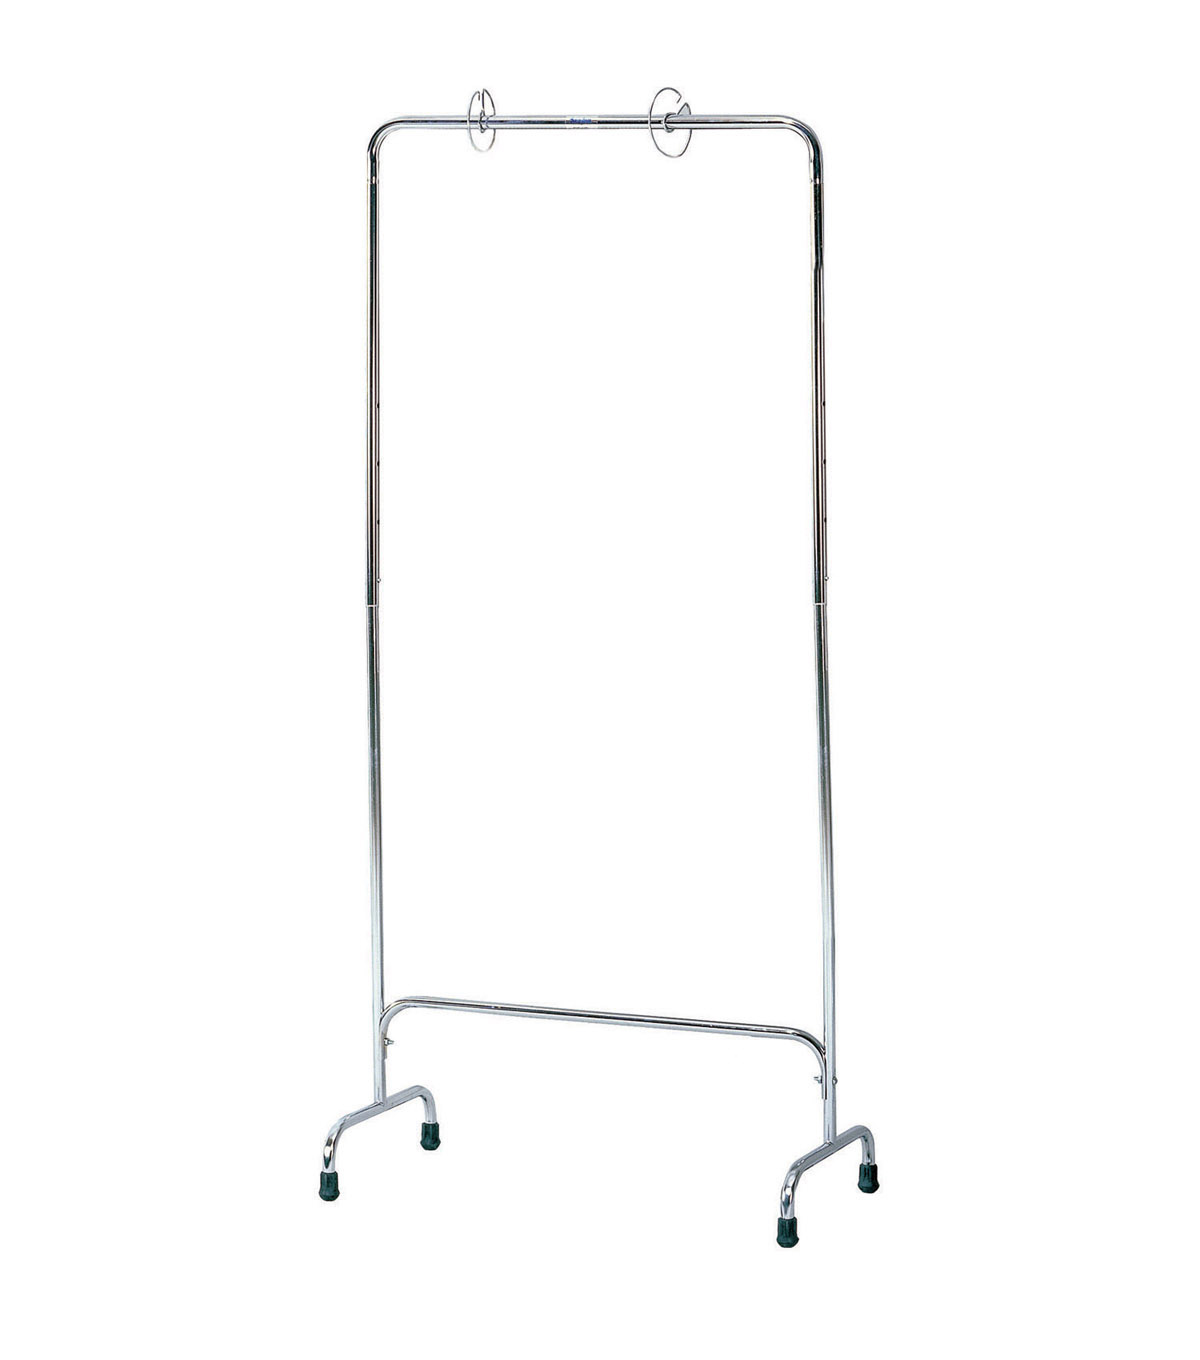 Pacon Chart Stand, Adjustable, Metal, Rubber Tipped Legs, 28\u0022 Wide